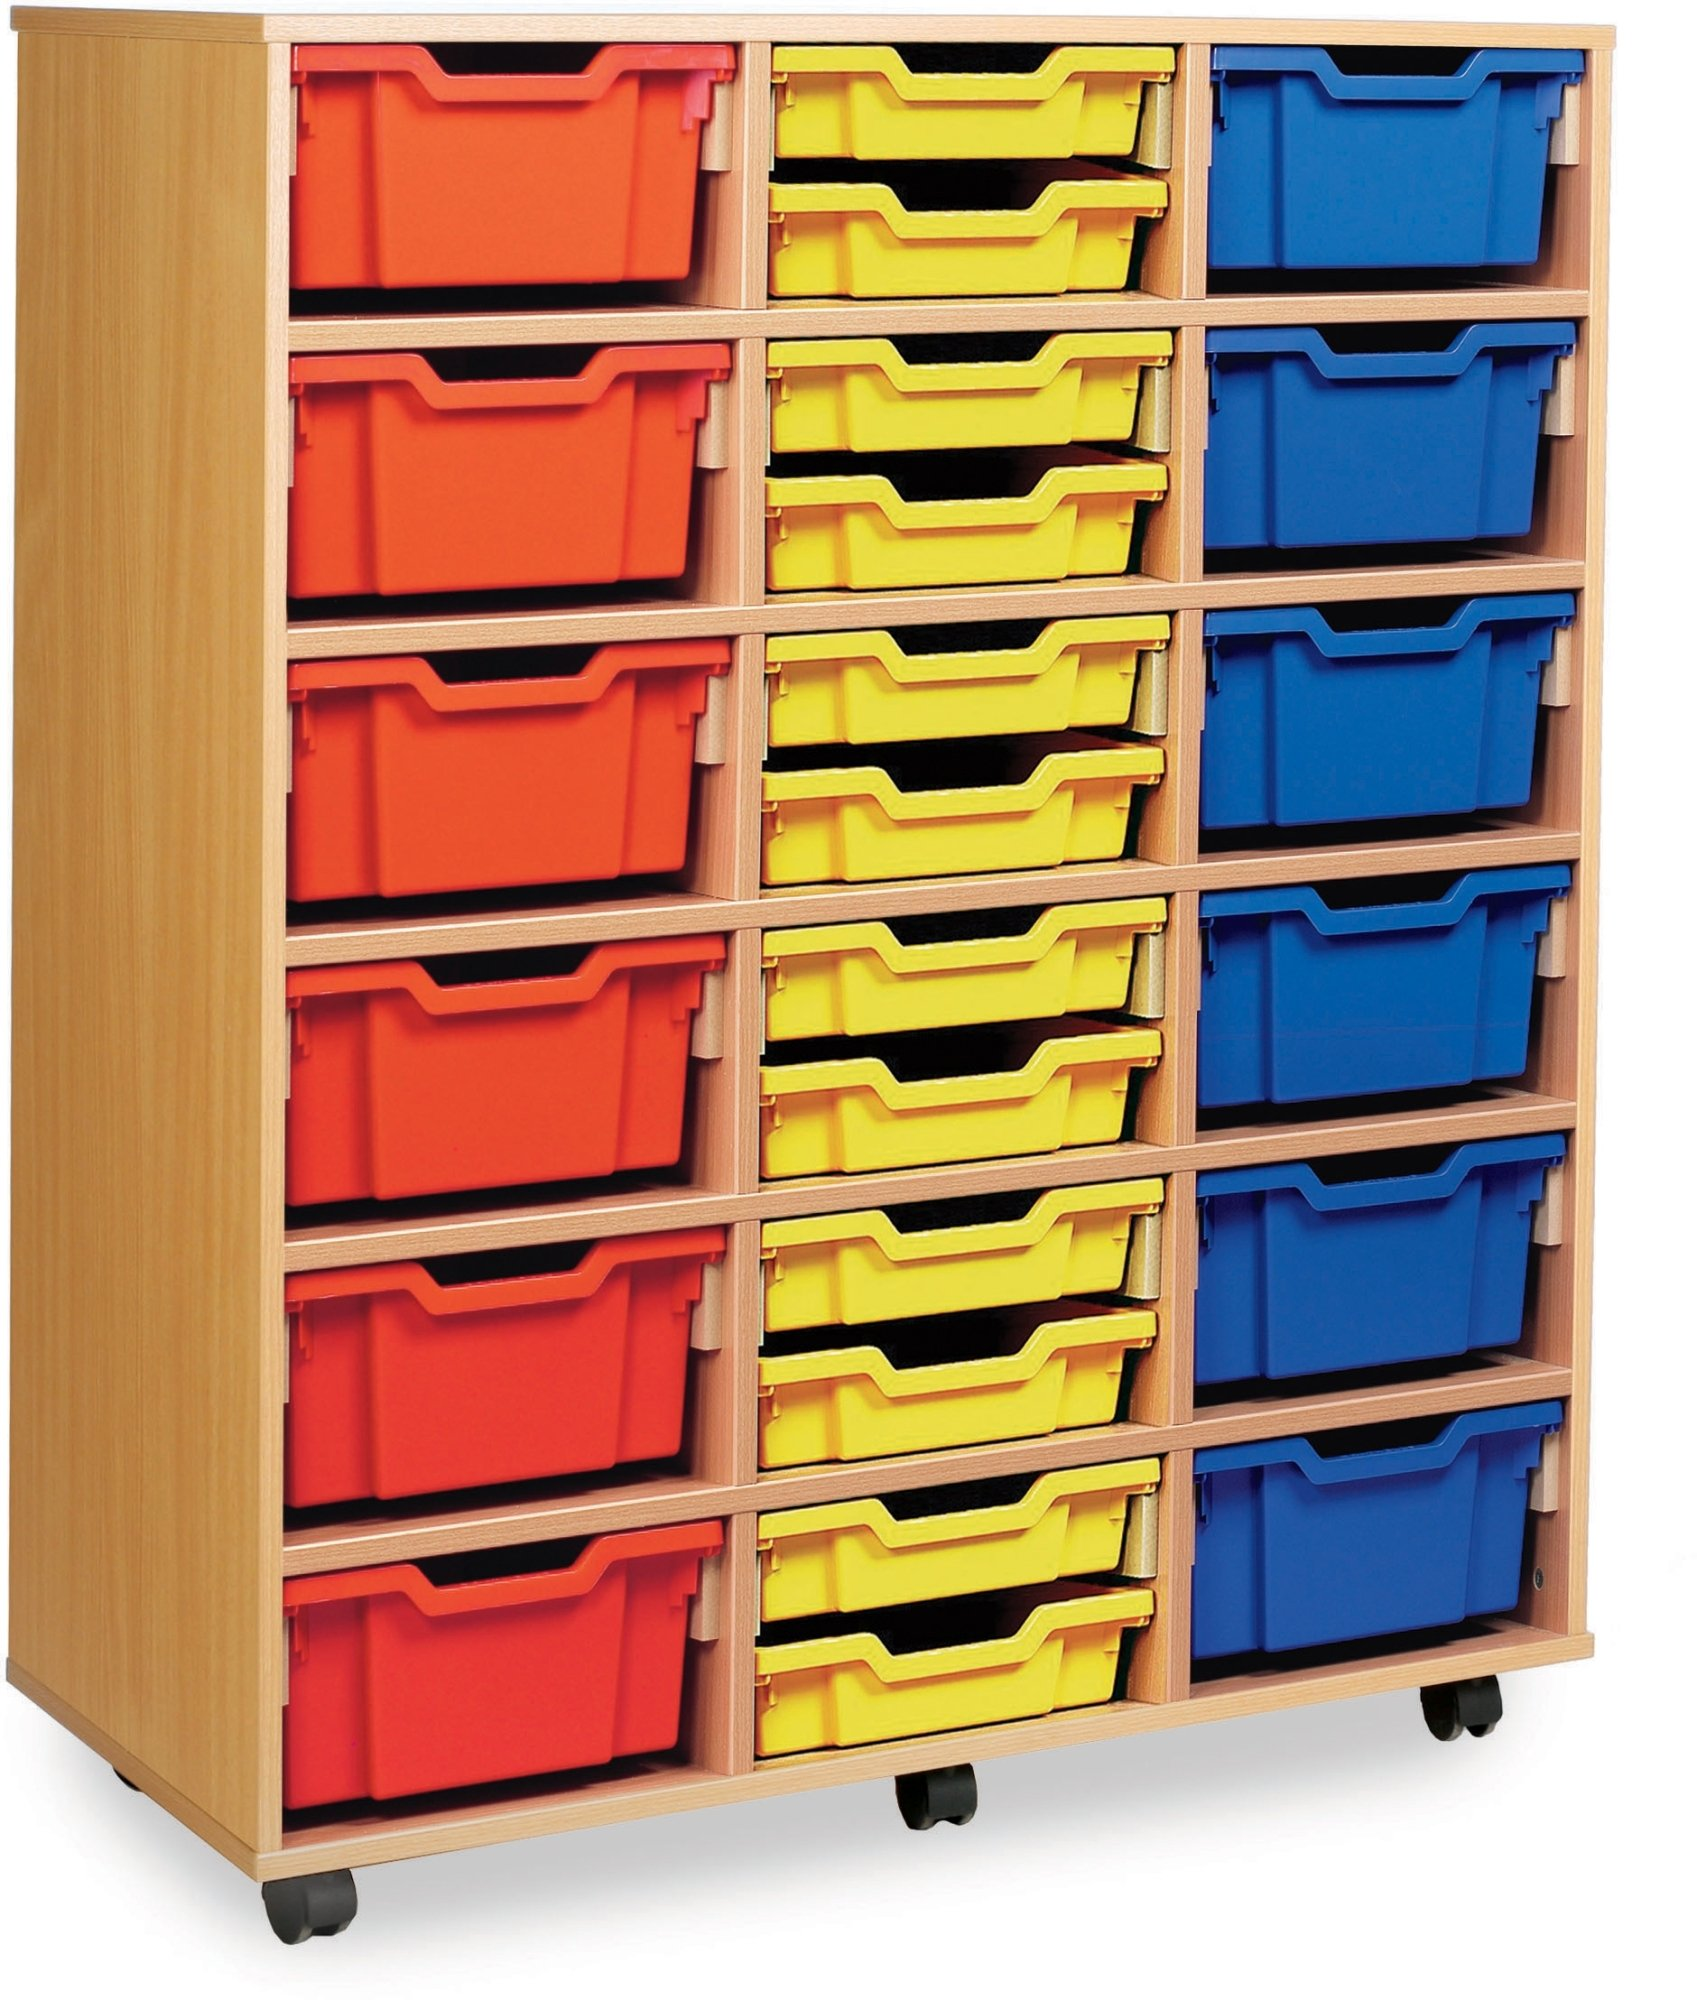 classic tray storage unit 24 shallow and 12 deep trays. Black Bedroom Furniture Sets. Home Design Ideas